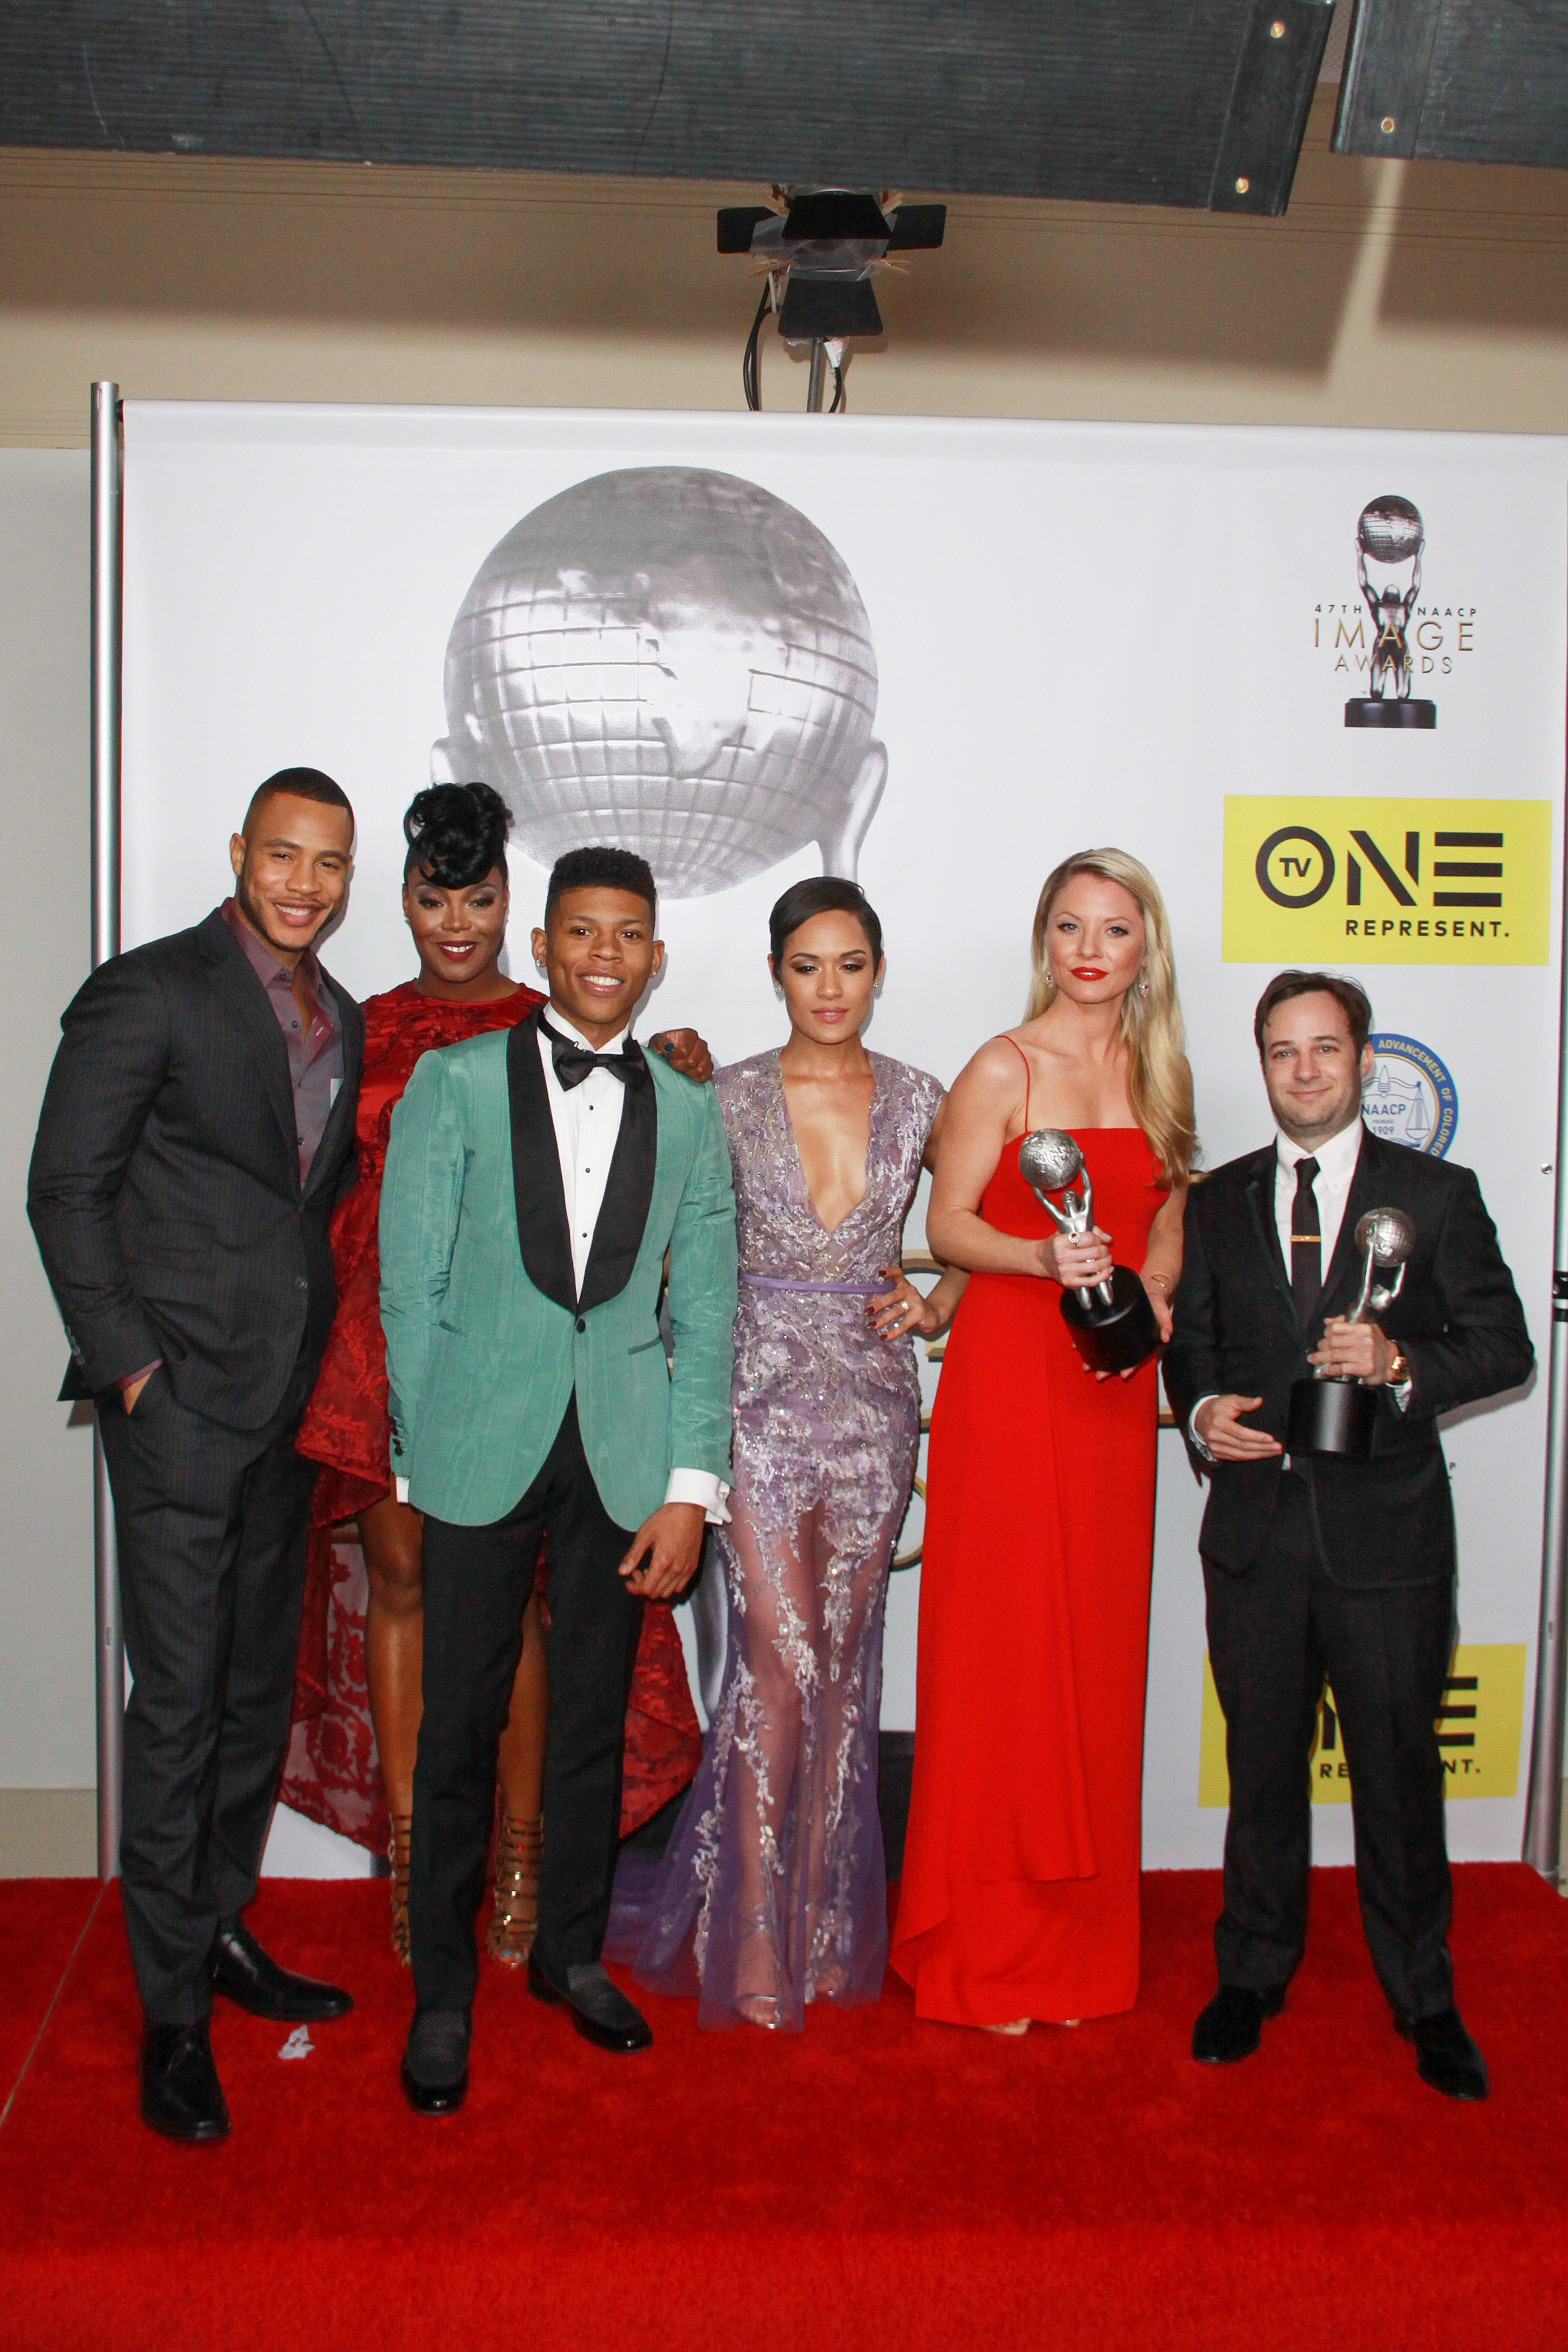 "02/05/2016 - Trai Byers, Ta'Rhonda Jones, Bryshere Y. Gray, Grace Gealey, Kaitlin Doubleday, Danny Strong - 47th NAACP Image Awards - Press Room - Pasadena Civic Auditorium - Pasadena, CA, USA - Keywords: ""Empire"", Vertical, Red Carpet Event, People, Person, Award, Portrait, Photography, Arts Culture and Entertainment, Attending, Celebrities, Celebrity, Award, Topix, Bestof, The National Association for the Advancement of Colored People, civil rights organization, ethnic minorities, City Of Los Angeles, California Orientation: Portrait Face Count: 1 - False - Photo Credit: Kazuki Hirata / HollywoodNewsWire.net / PRPhotos.com - Contact (1-866-551-7827) - Portrait Face Count: 1"